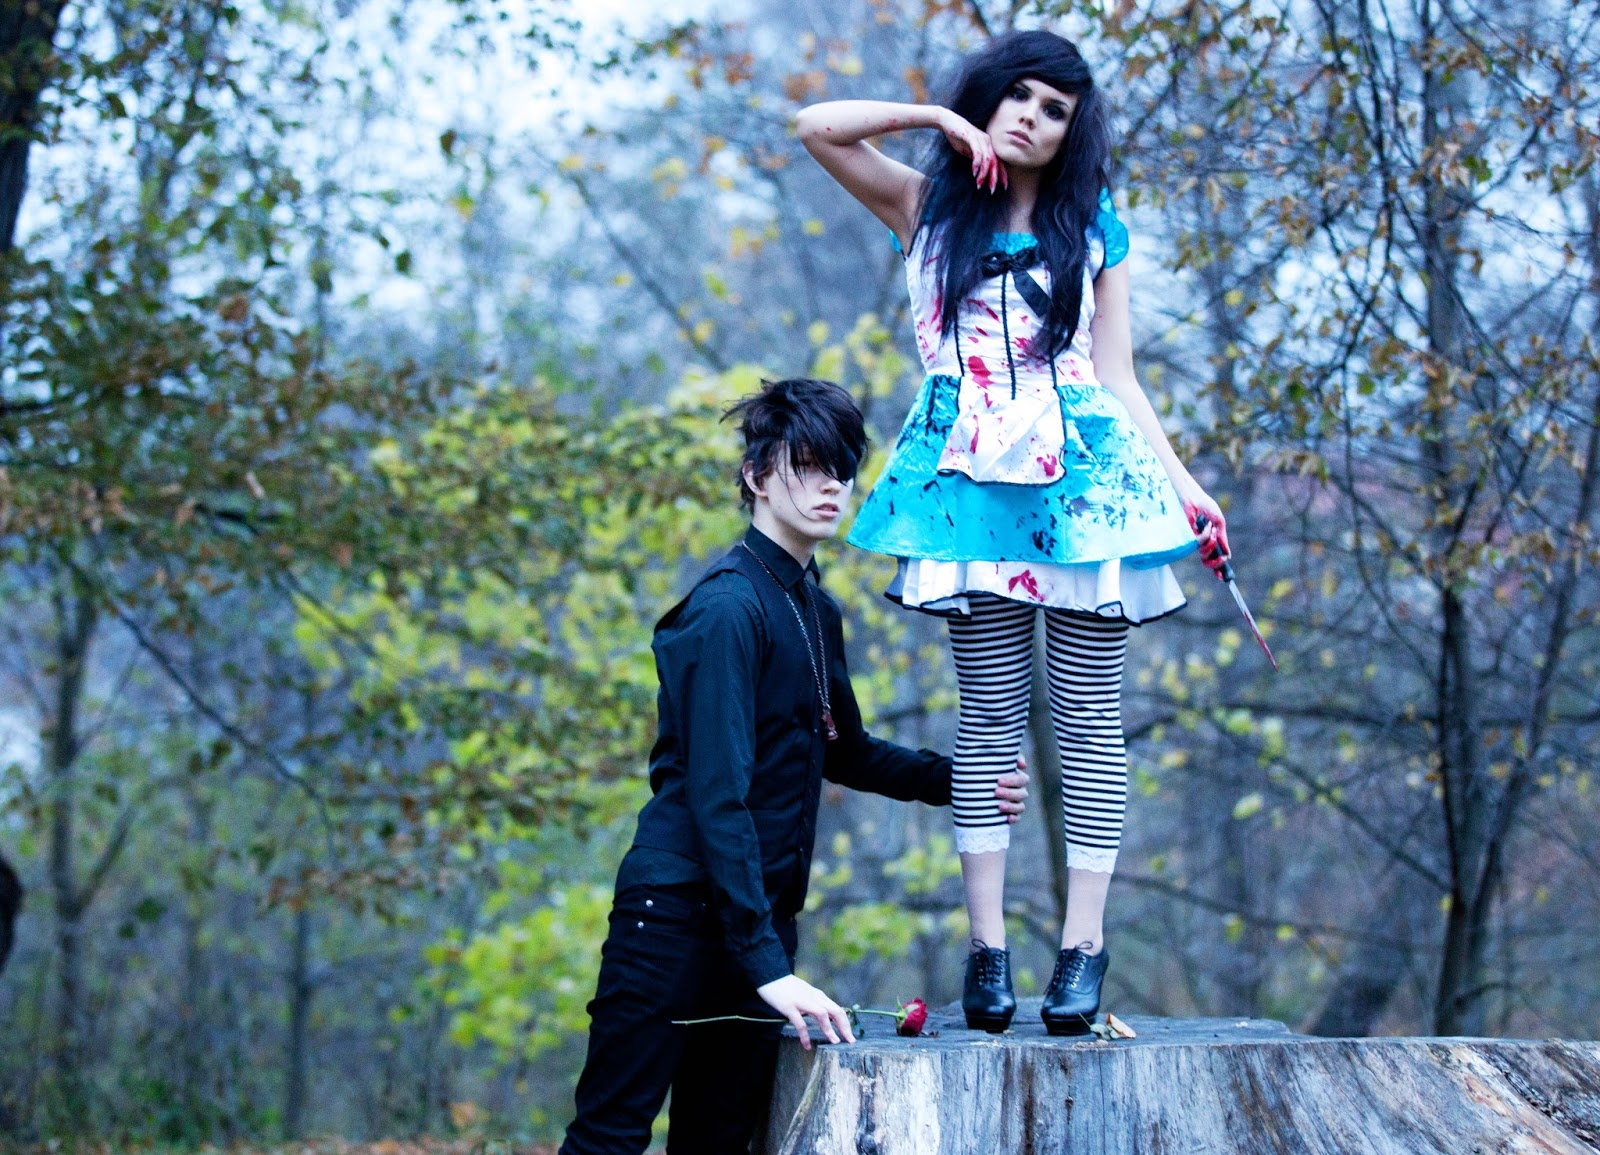 Dark Alice In Wonderland Photoshoot